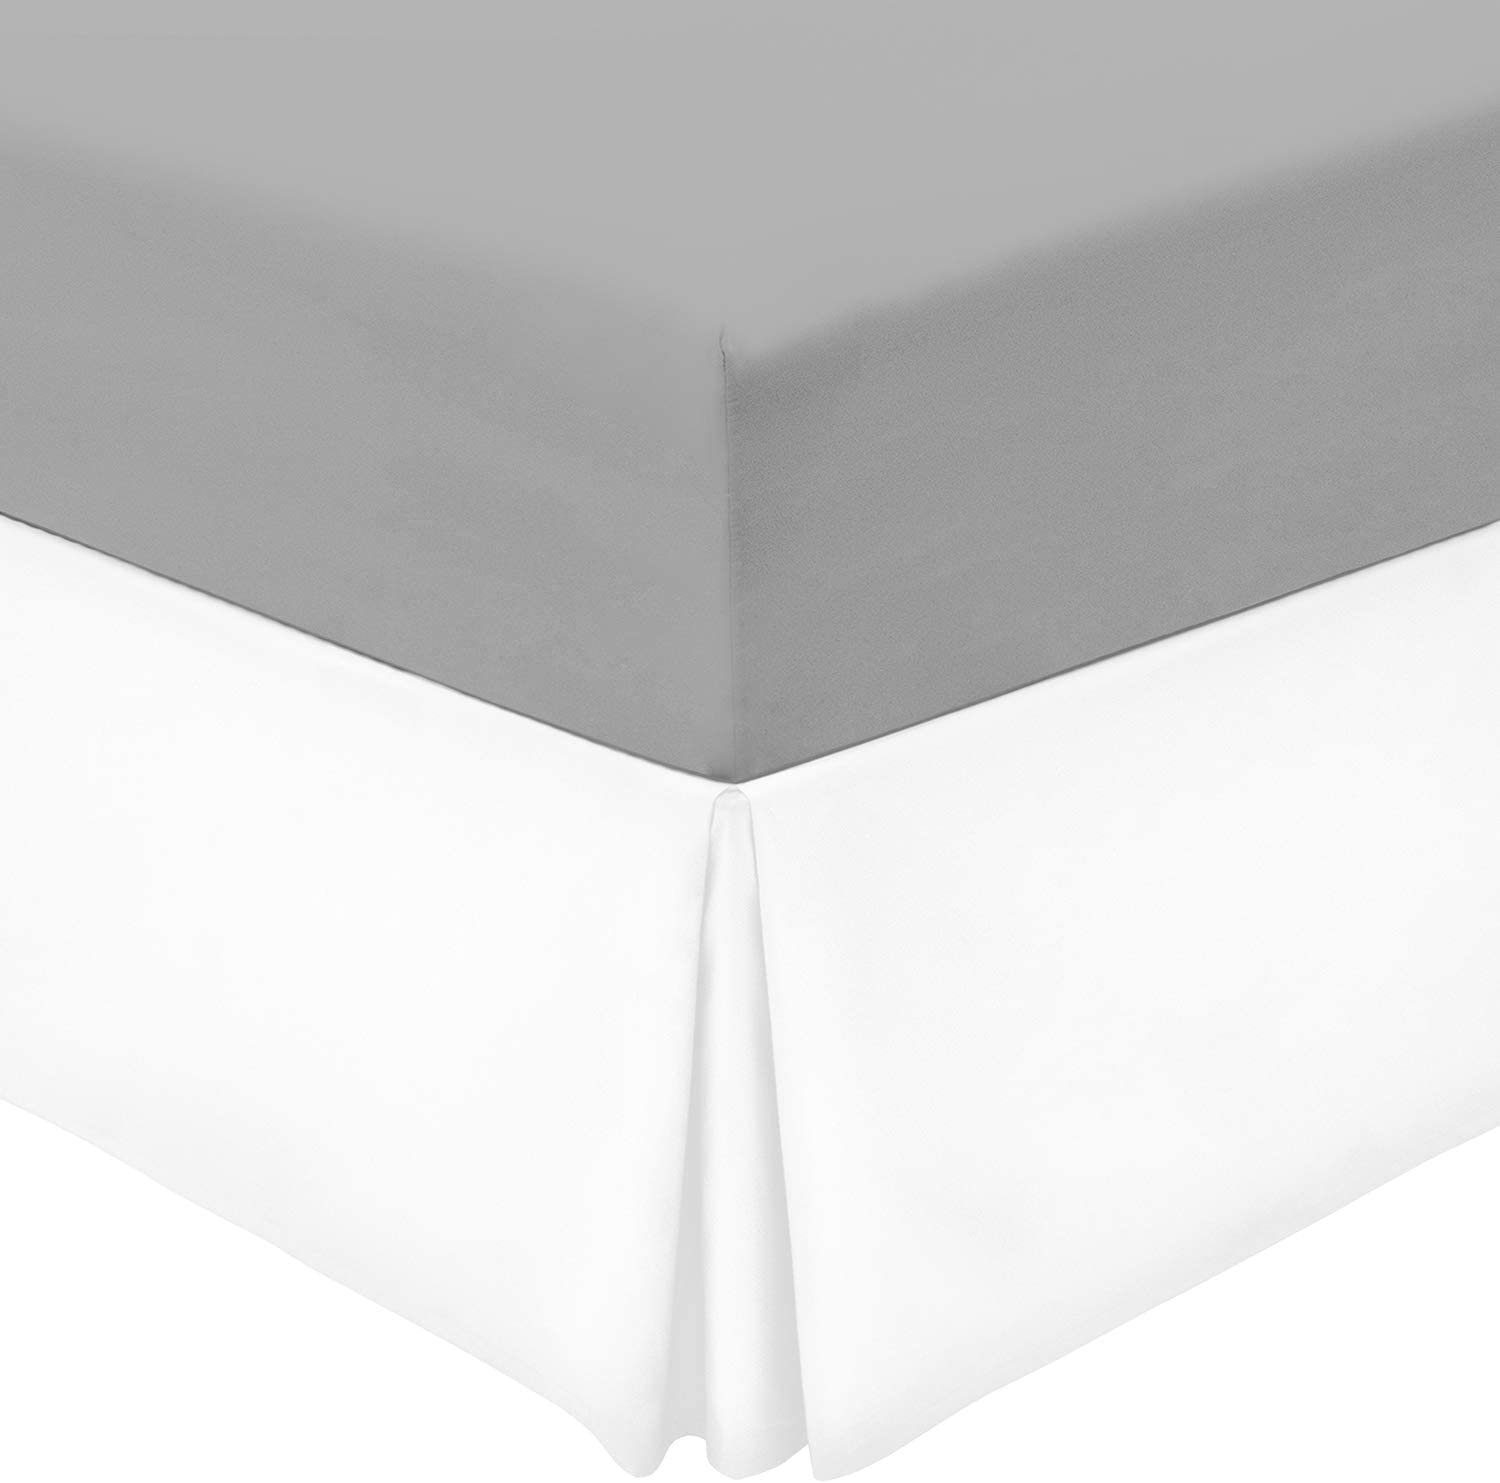 Mellanni Bed Skirt King Size - 15-Inch Tailored Drop Pleated Dust Ruffle - 1800 Double Brushed Microfiber Bedding - Easy Fit, Wrinkle, Fade, Stain Resistant (King, White)